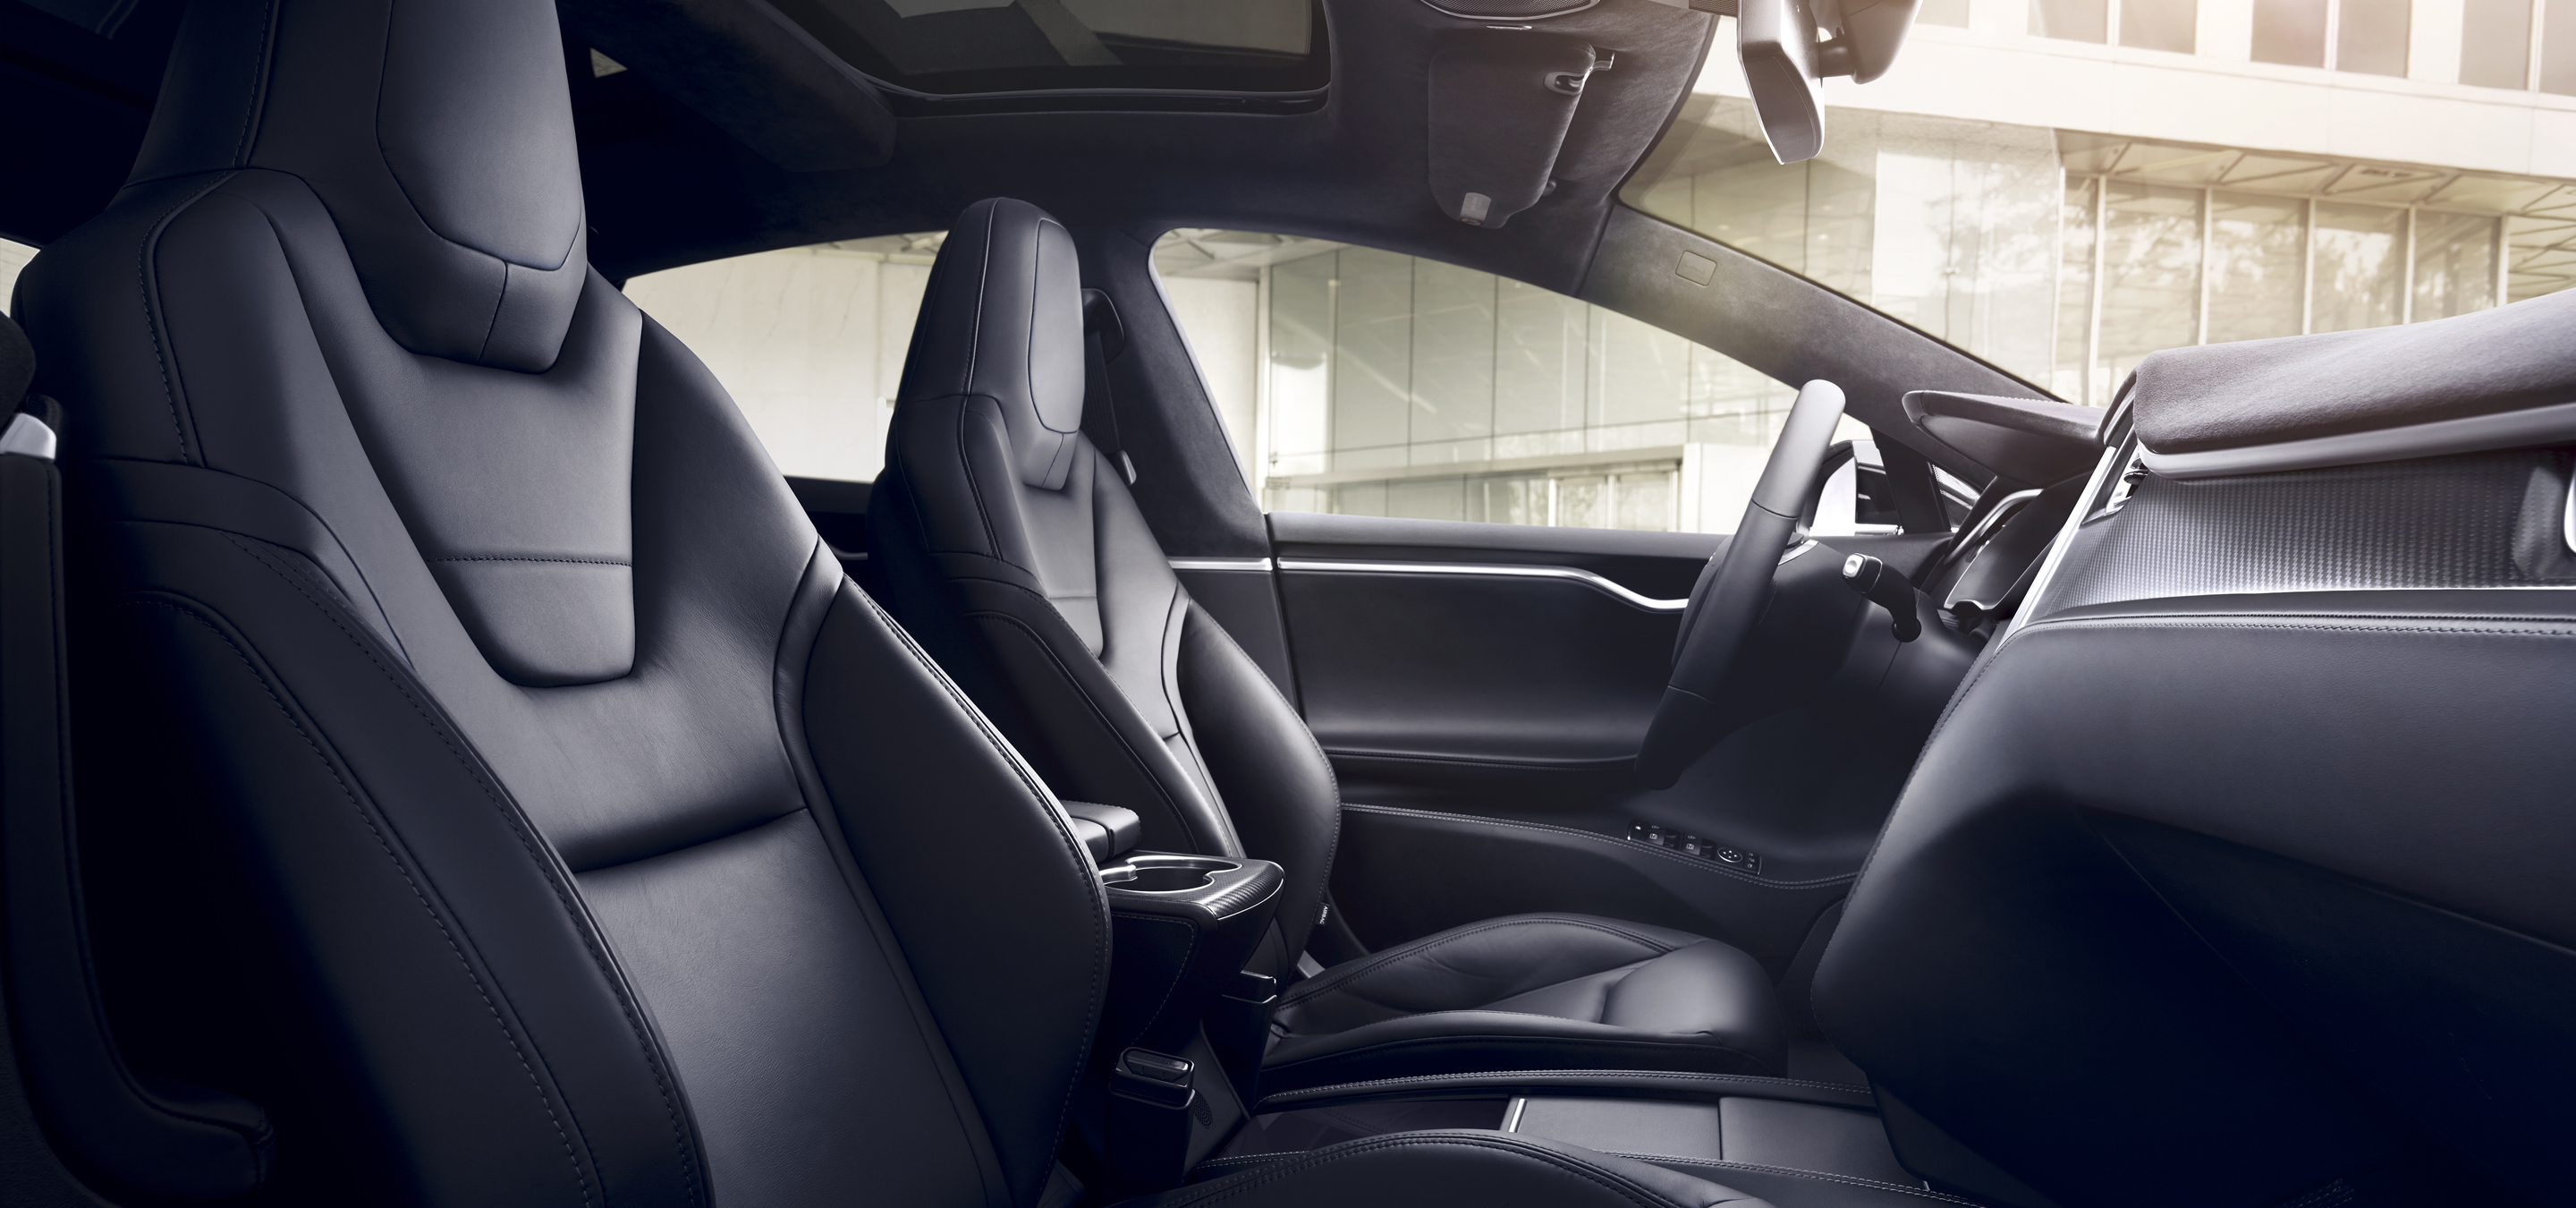 model-s-interior-with-next-generation-leather-seats